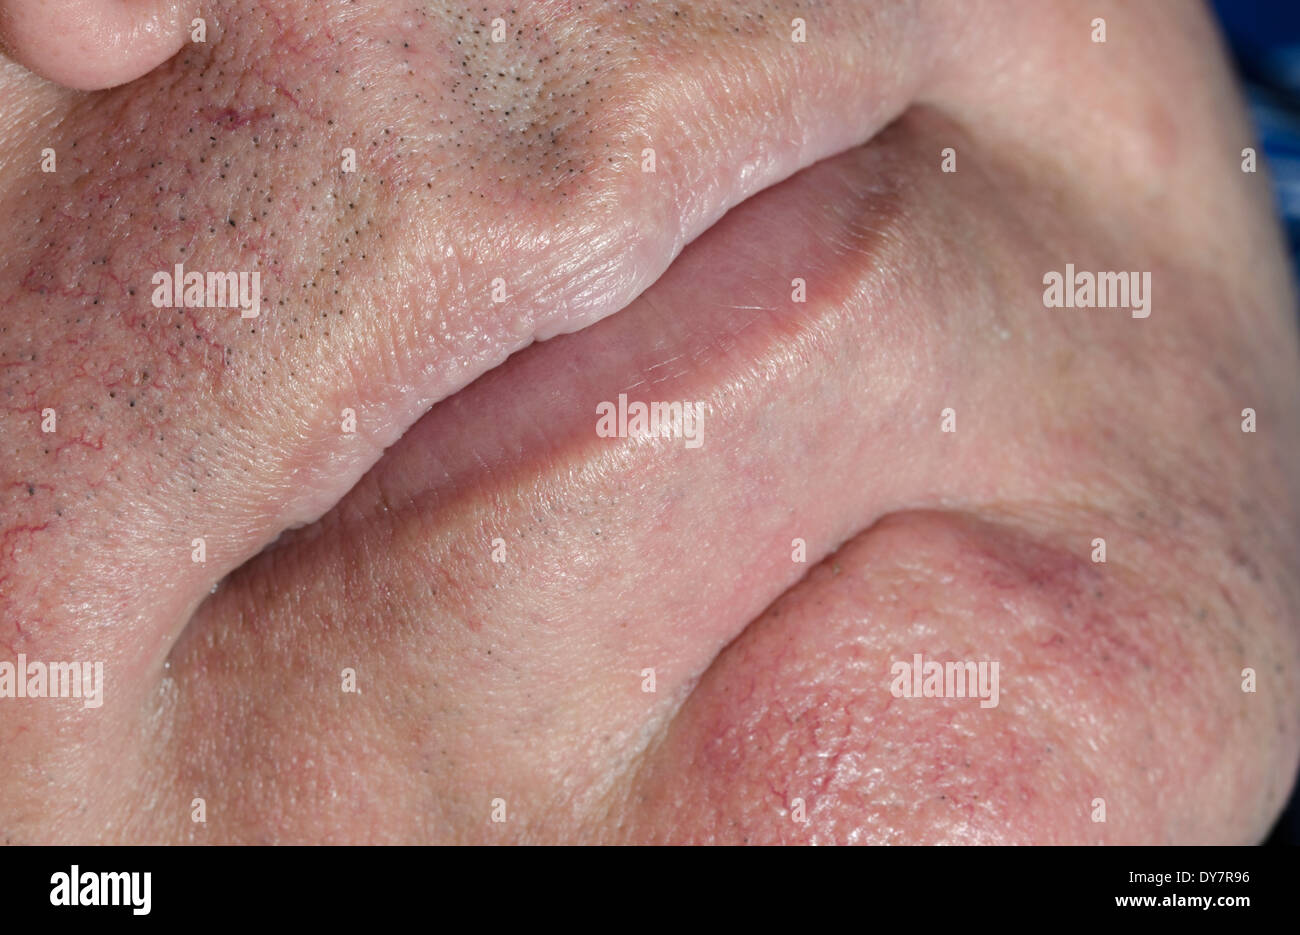 Mouth and lips closeup on a white mans face. - Stock Image